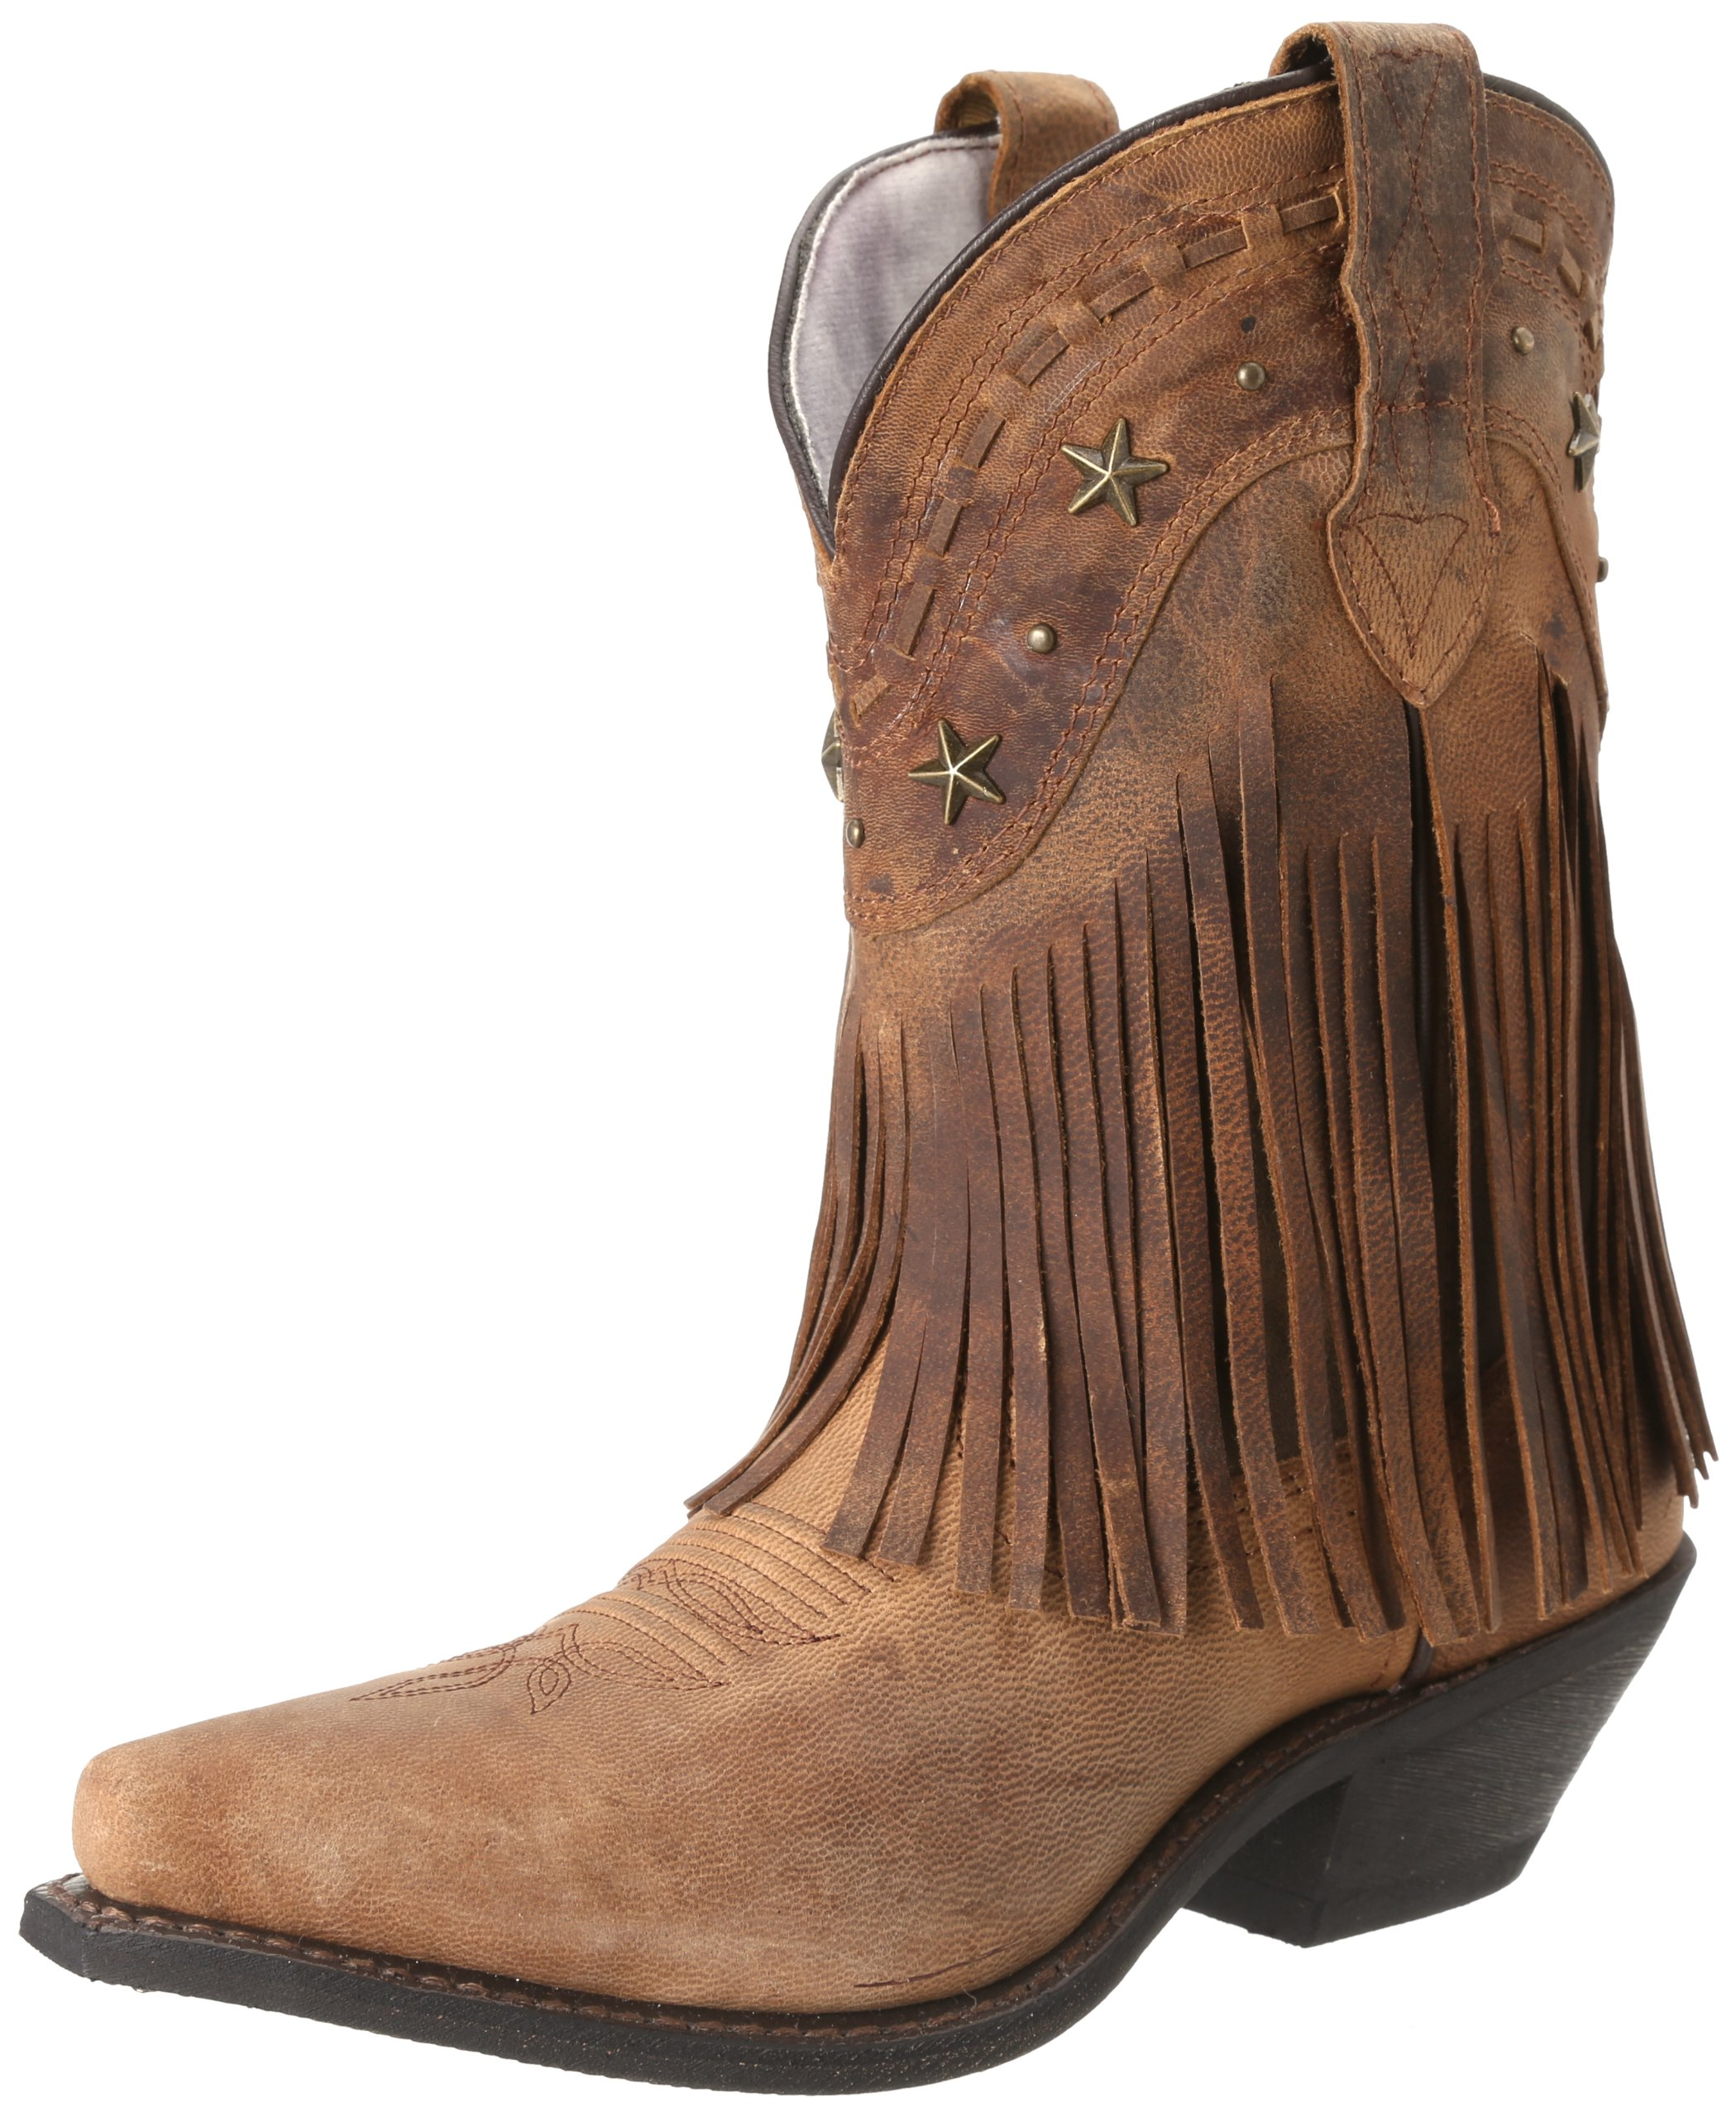 Dingo Women's Hang Low Boot,Brown,9.5 M US